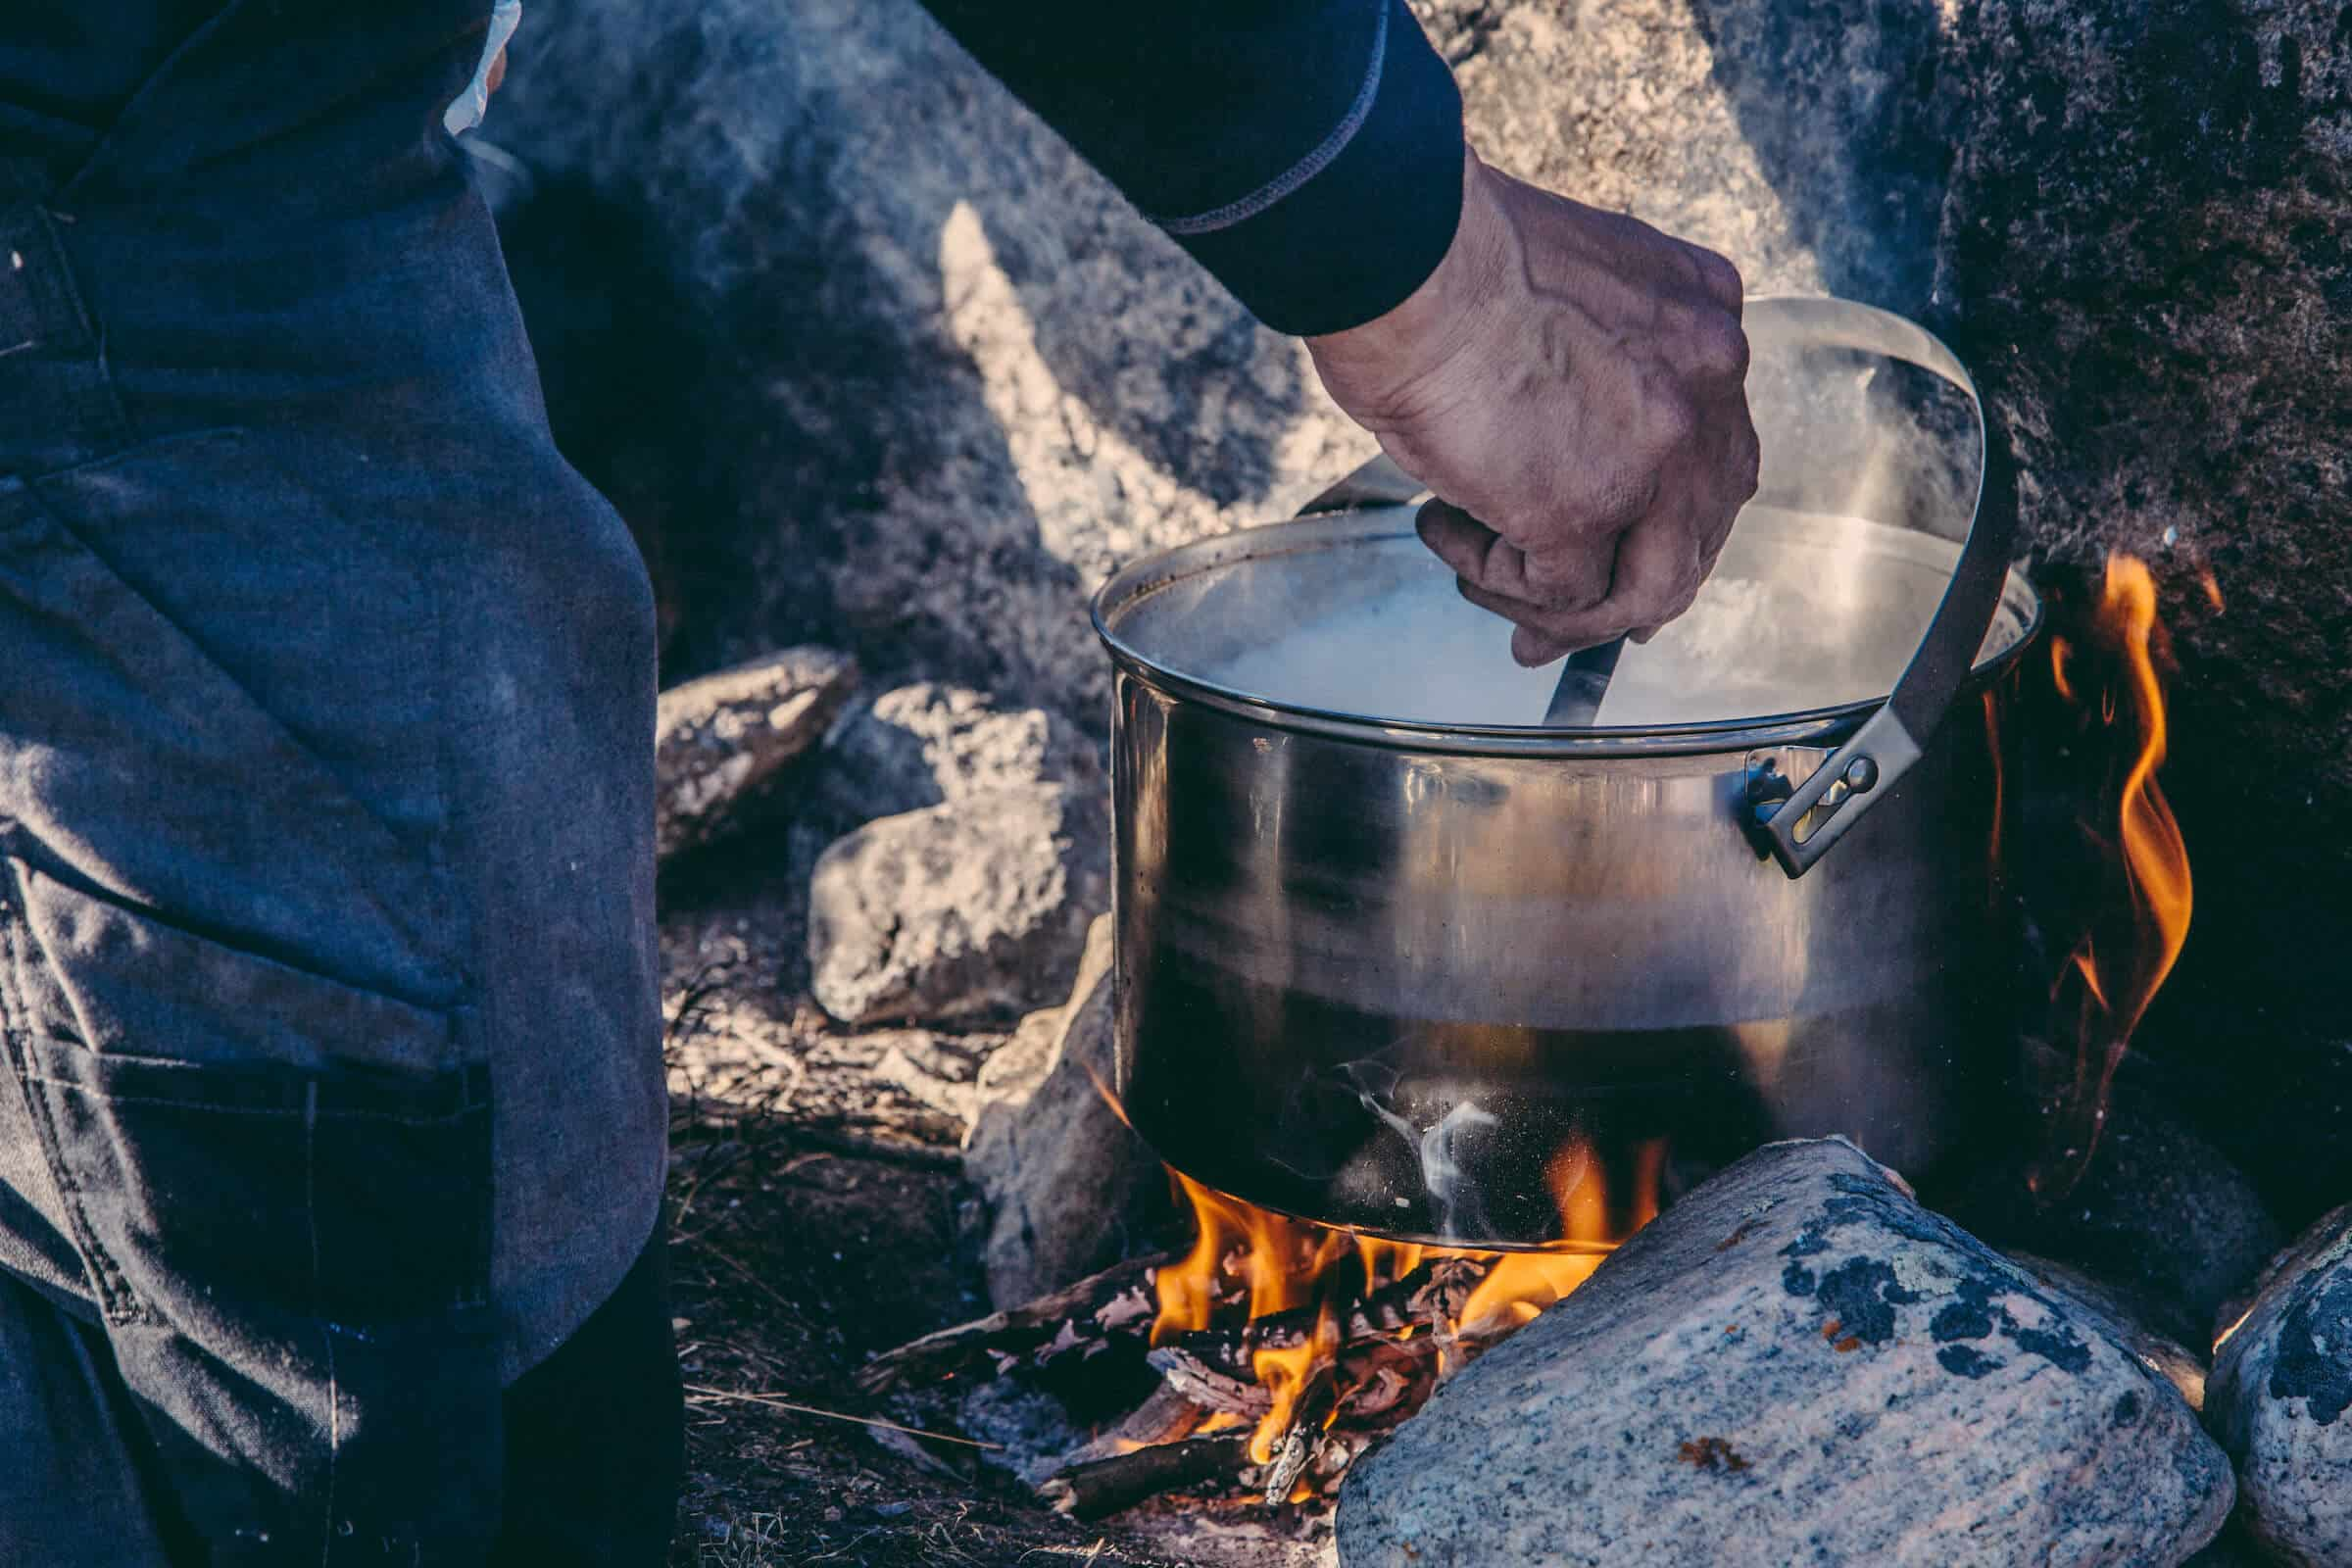 Guide cooking backcountry dinner over an open fire near the Arctic Circle. By Raven Eye Photography